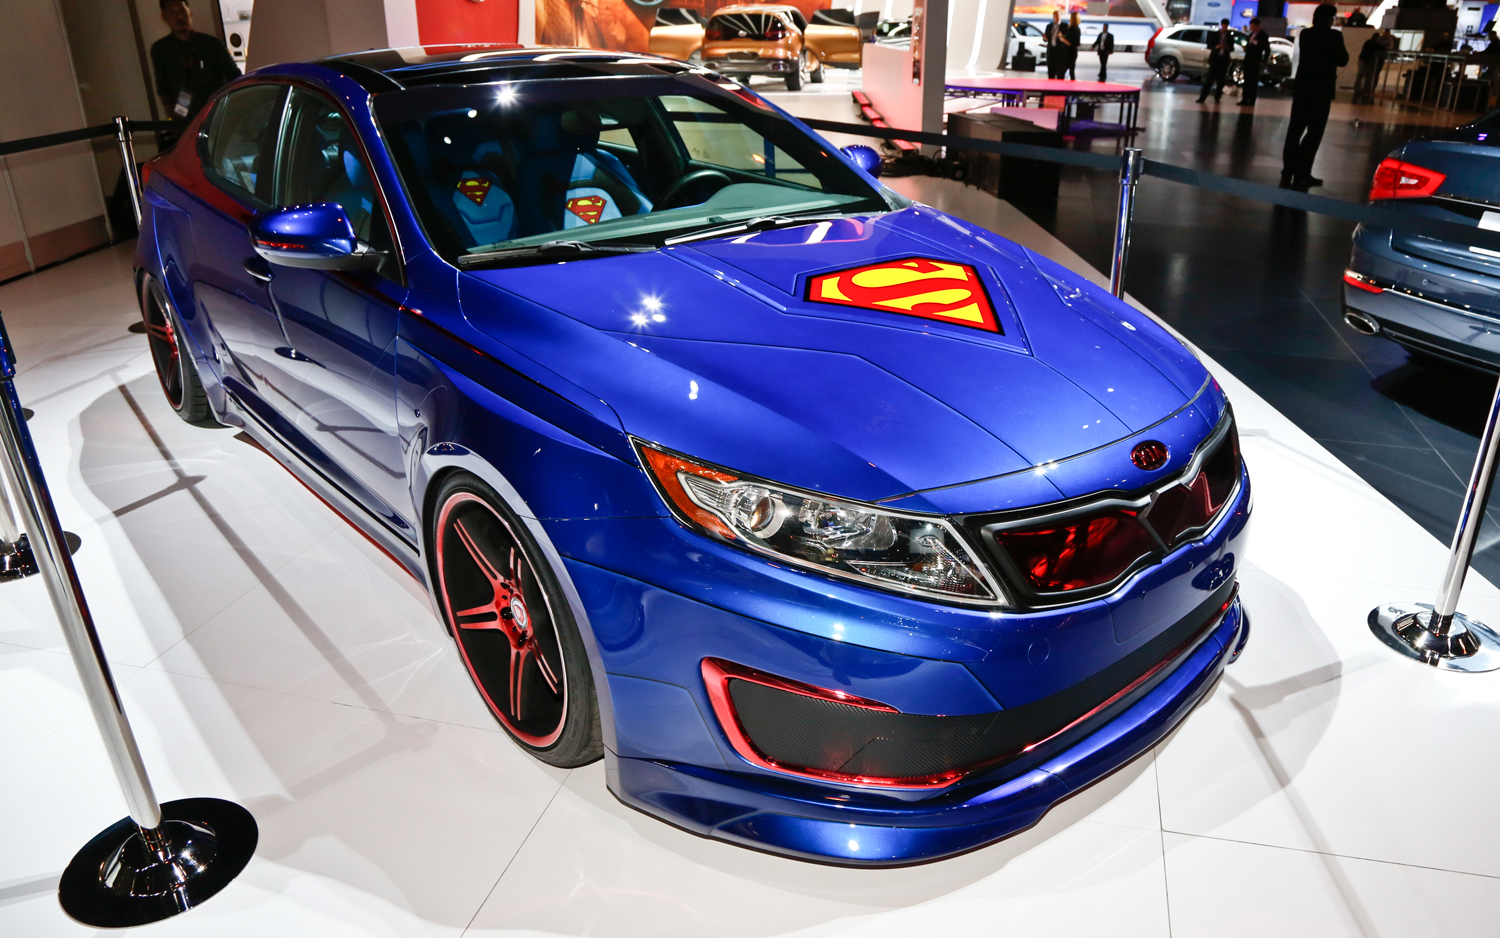 Superman Inspired Kia Optima Hybrid Unmasked In Chicago